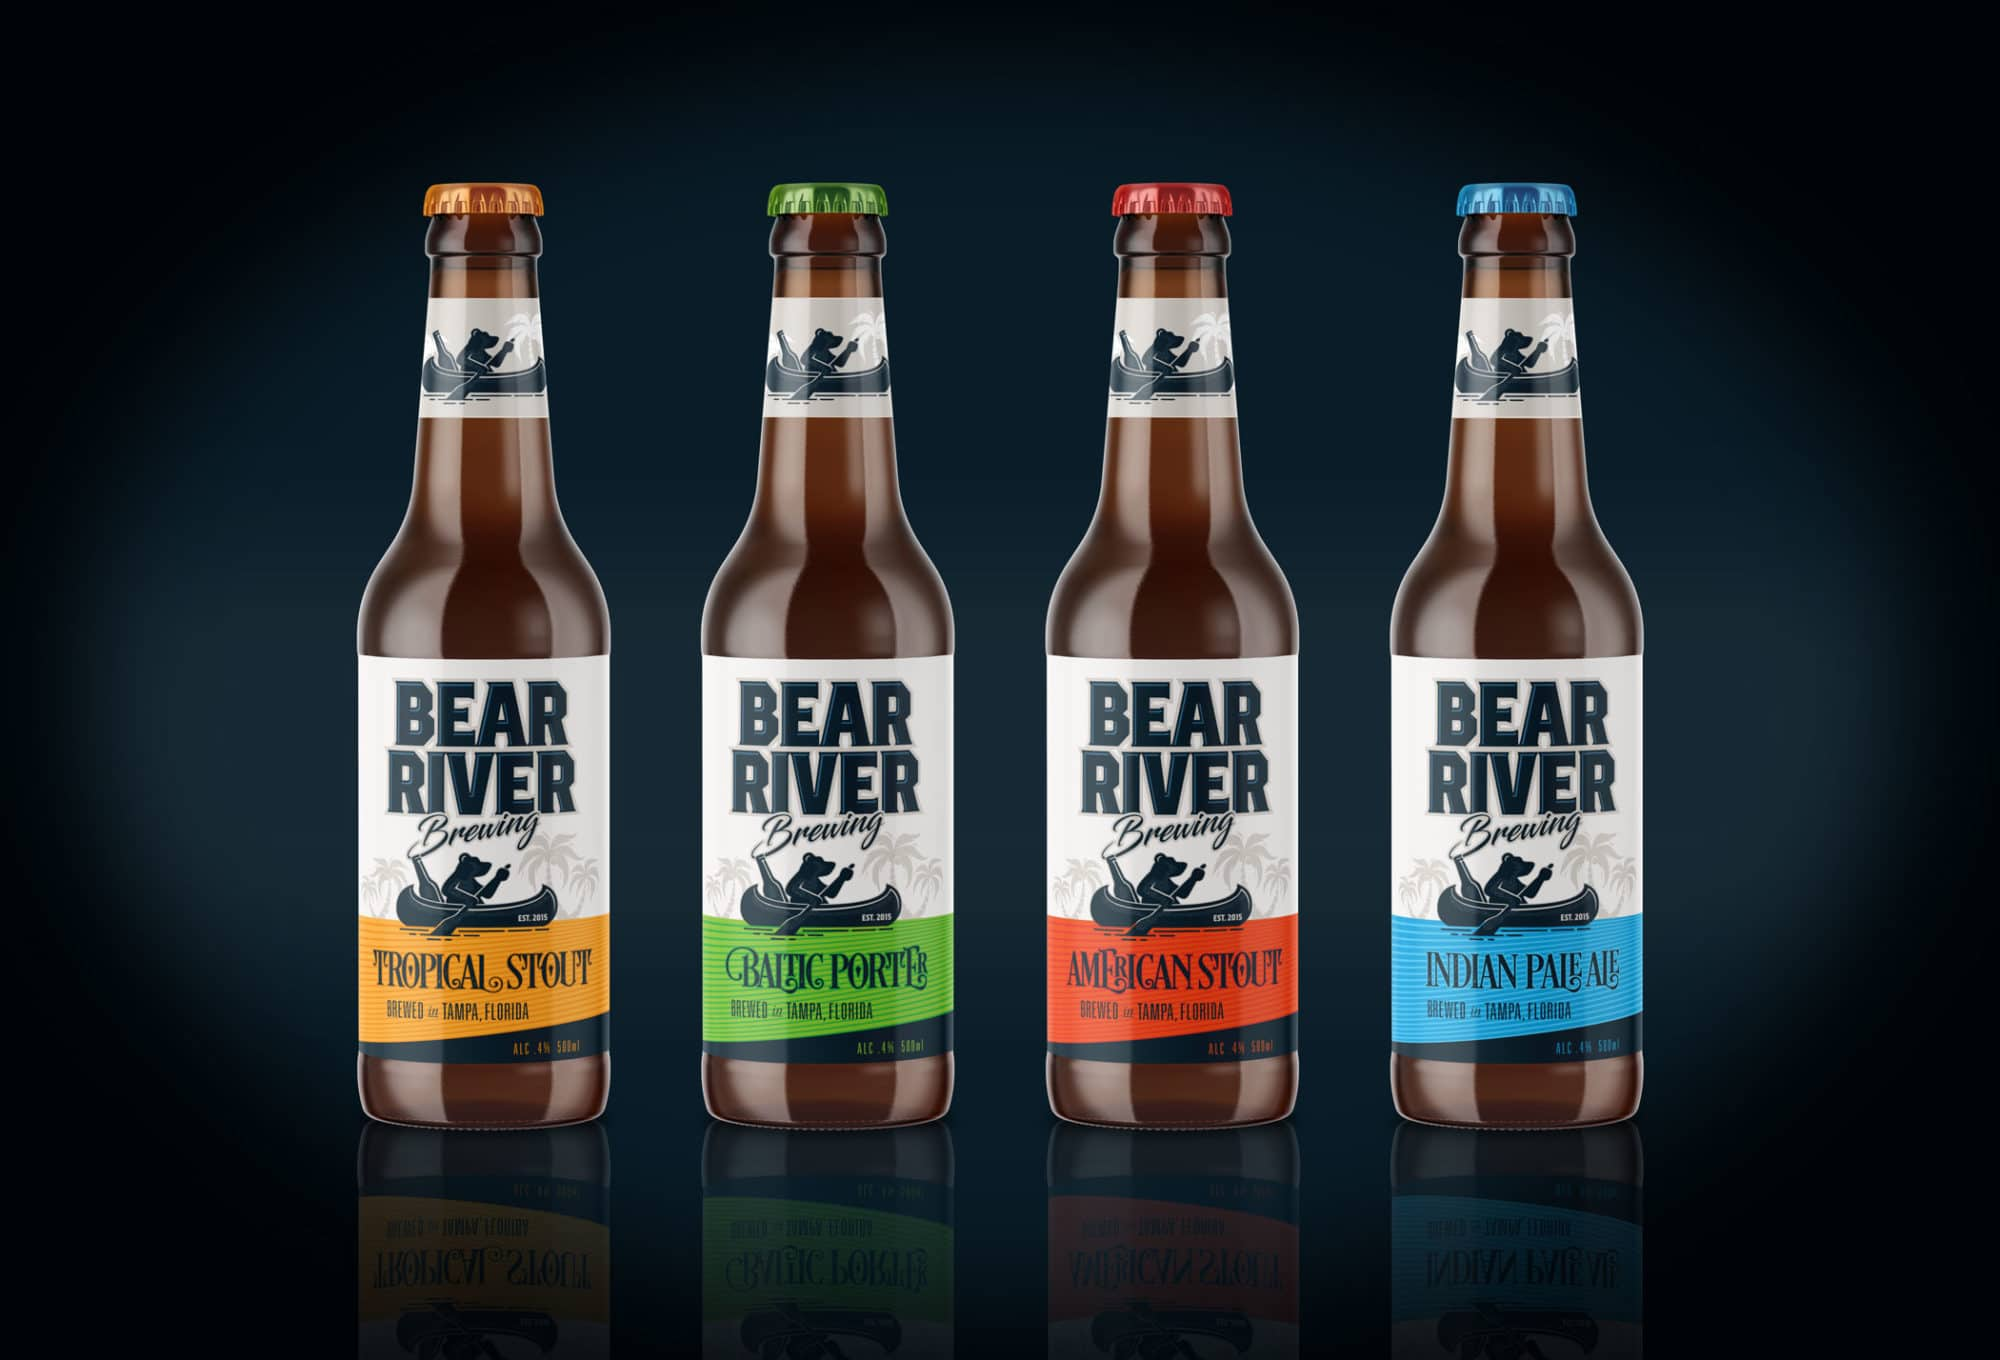 Bear River Brewing beer bottle label design